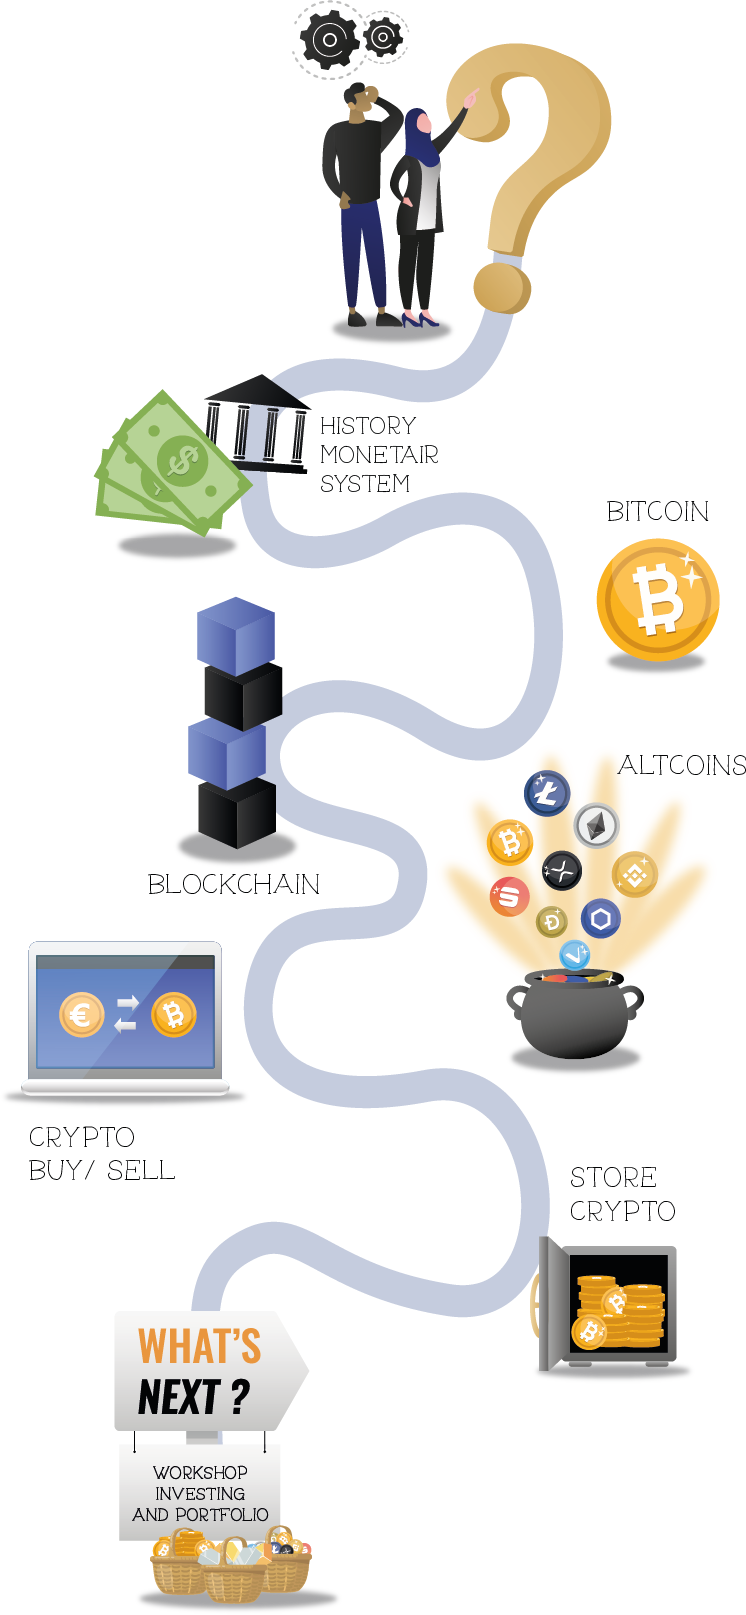 Crypto and Blockchain workshop mobile